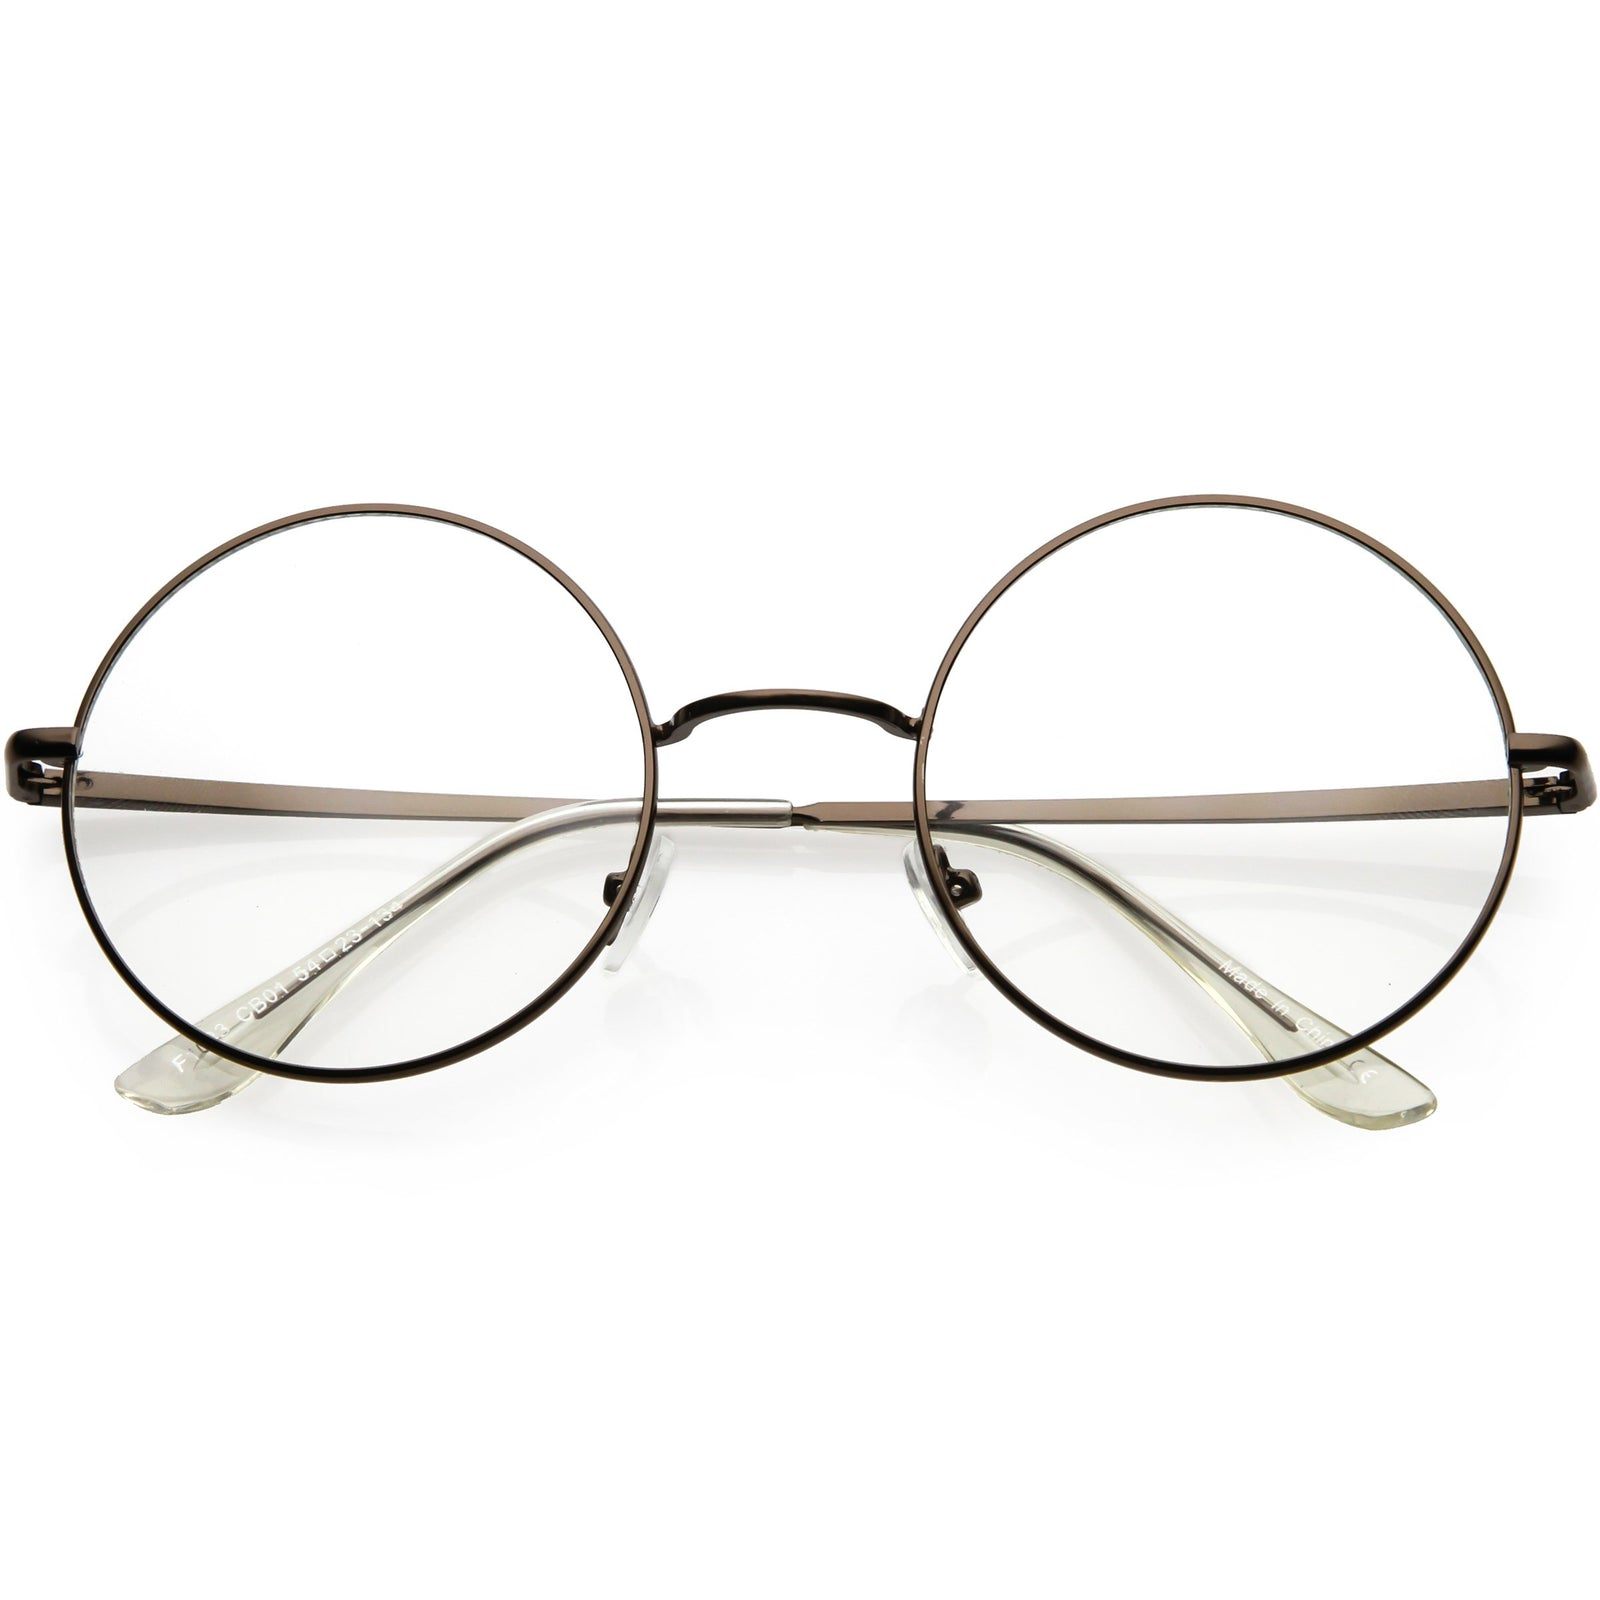 3575567457ca Vintage Classic Metal Round Clear Lens Glasses 50mm C854